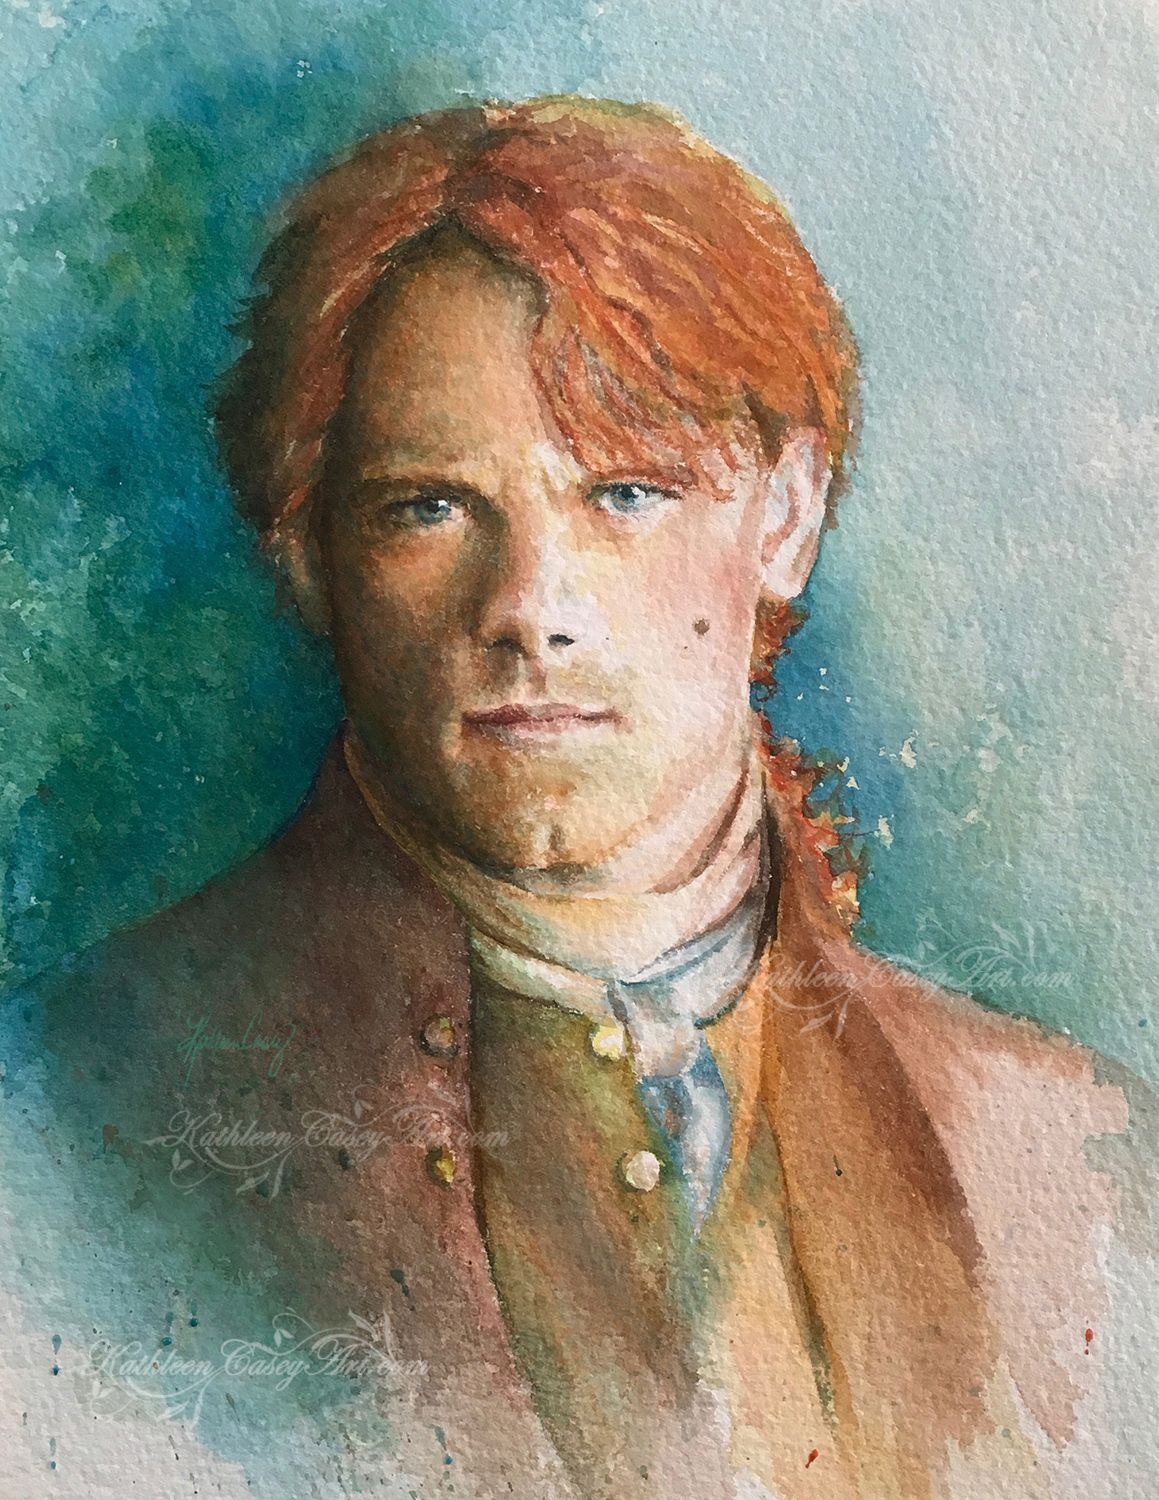 Sam Heughan As Jamie Fraser From The Hit Series Outlander This Is